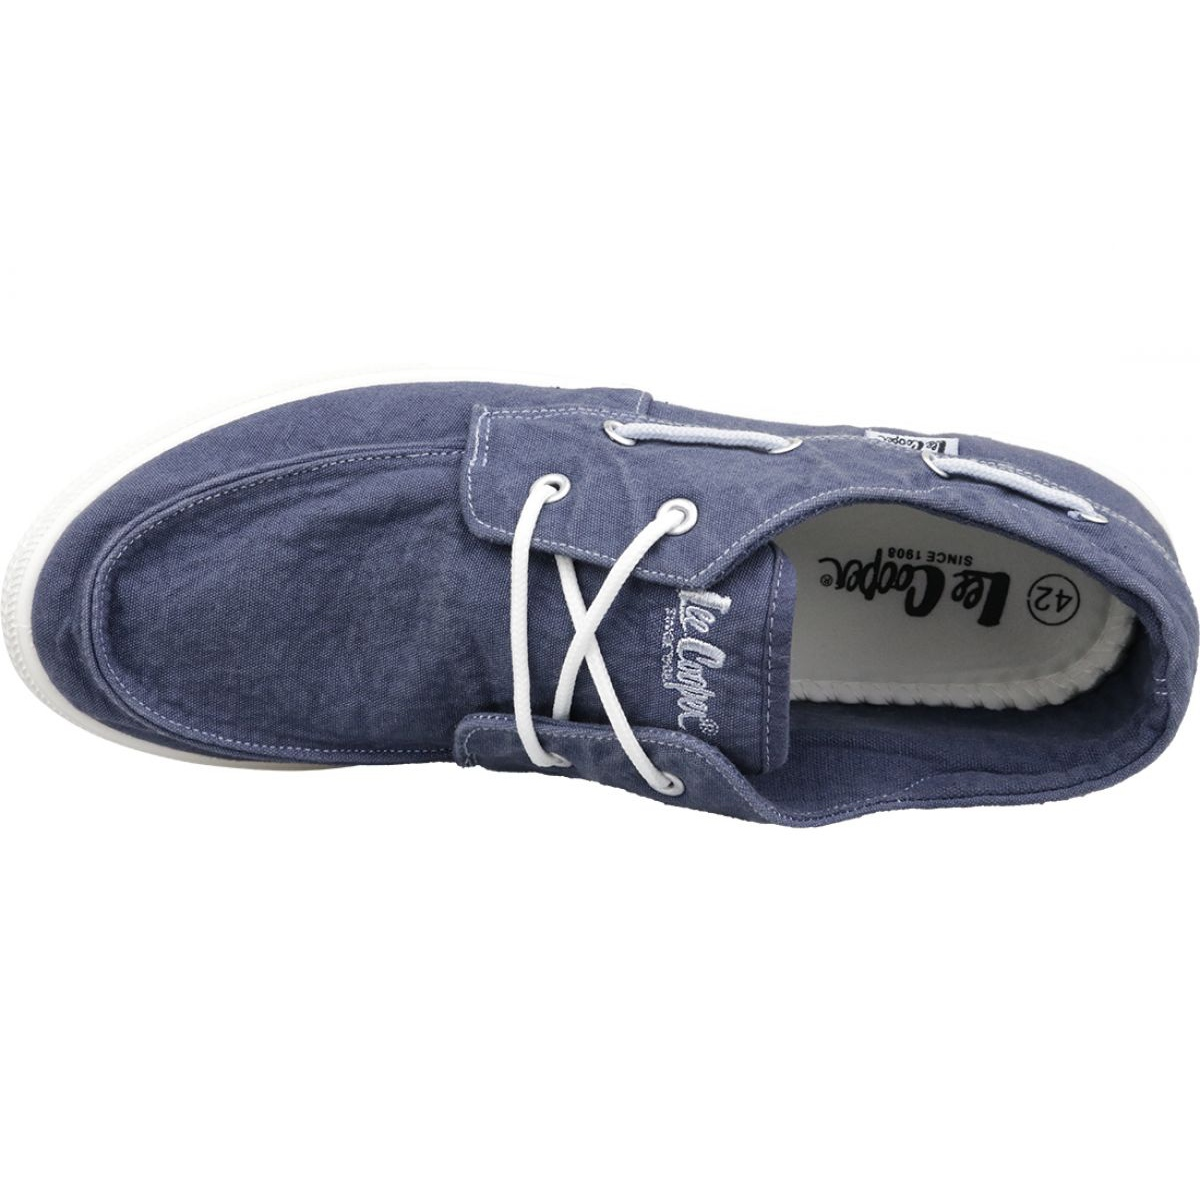 Details about Lee Cooper Master X 03 M LCW 19 530 091 shoes navy